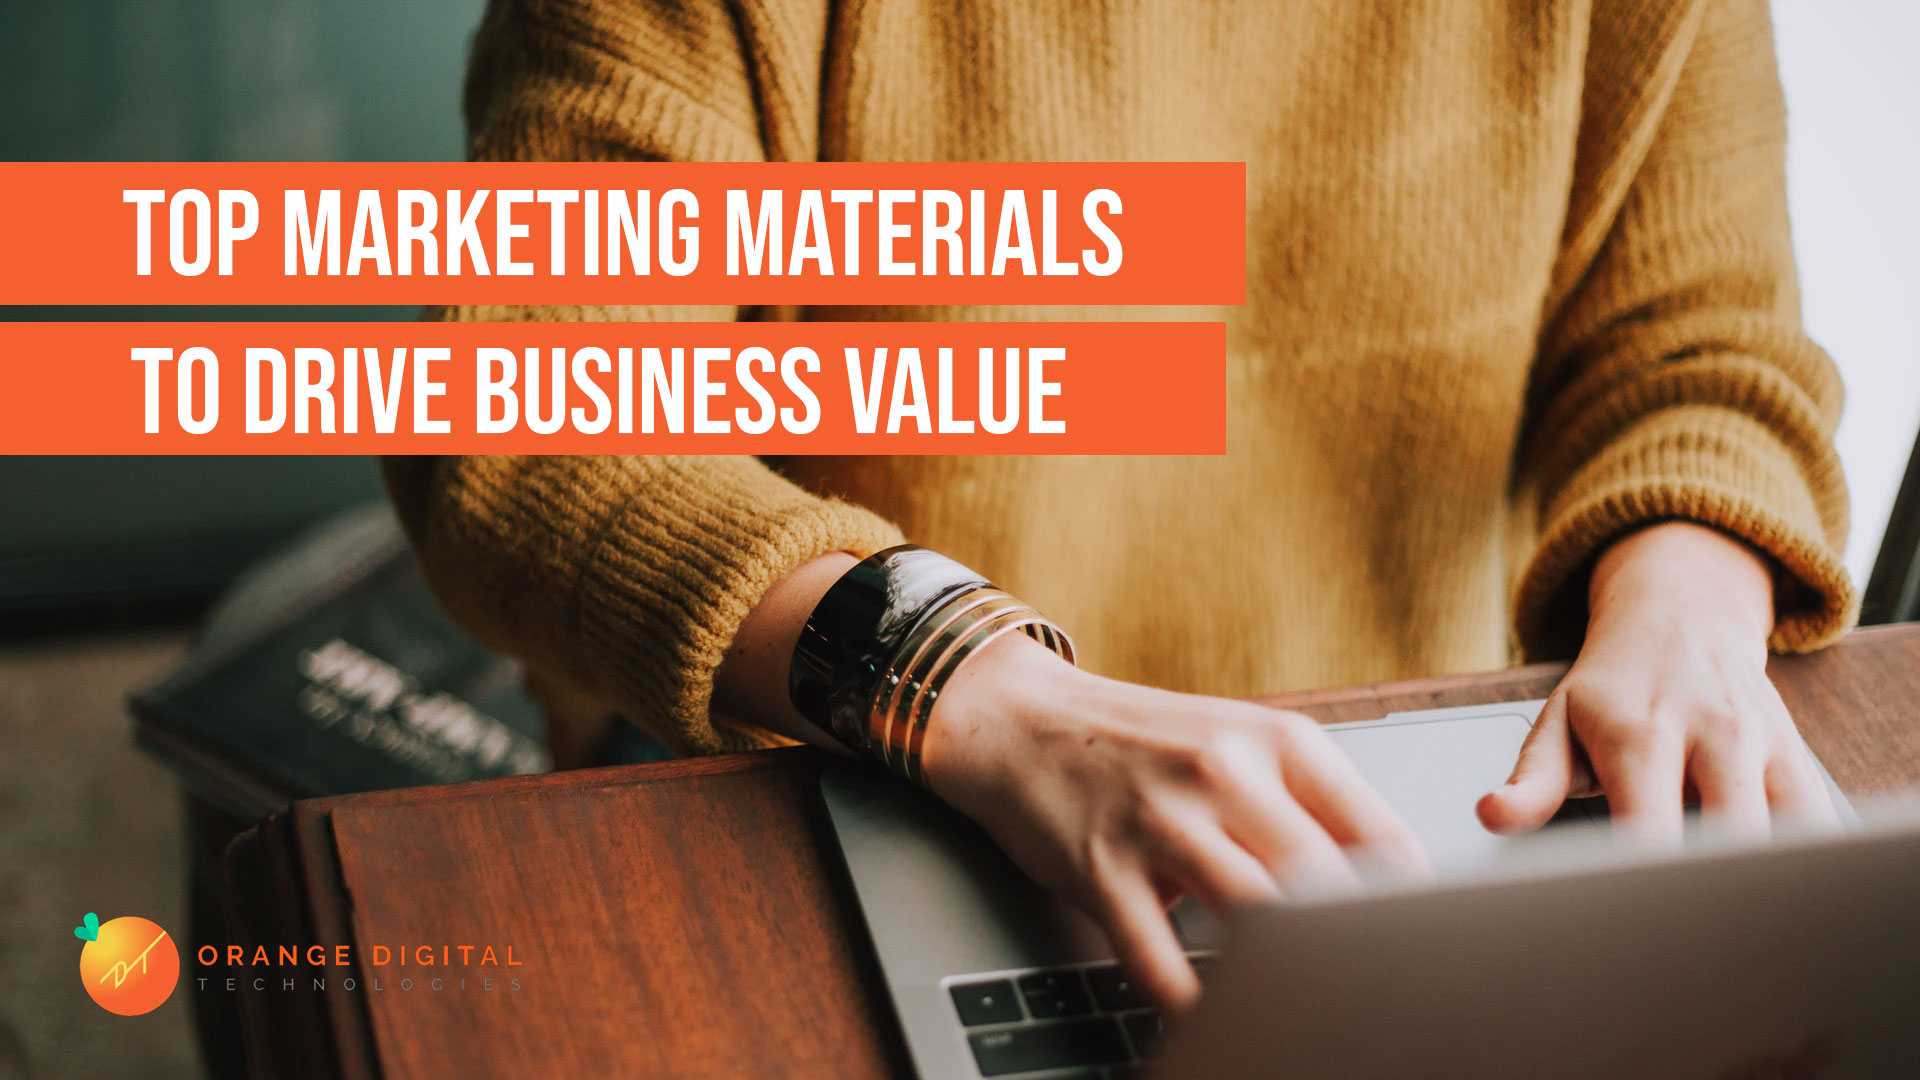 Top-Marketing-Materials-to-Drive-Business-Value baner